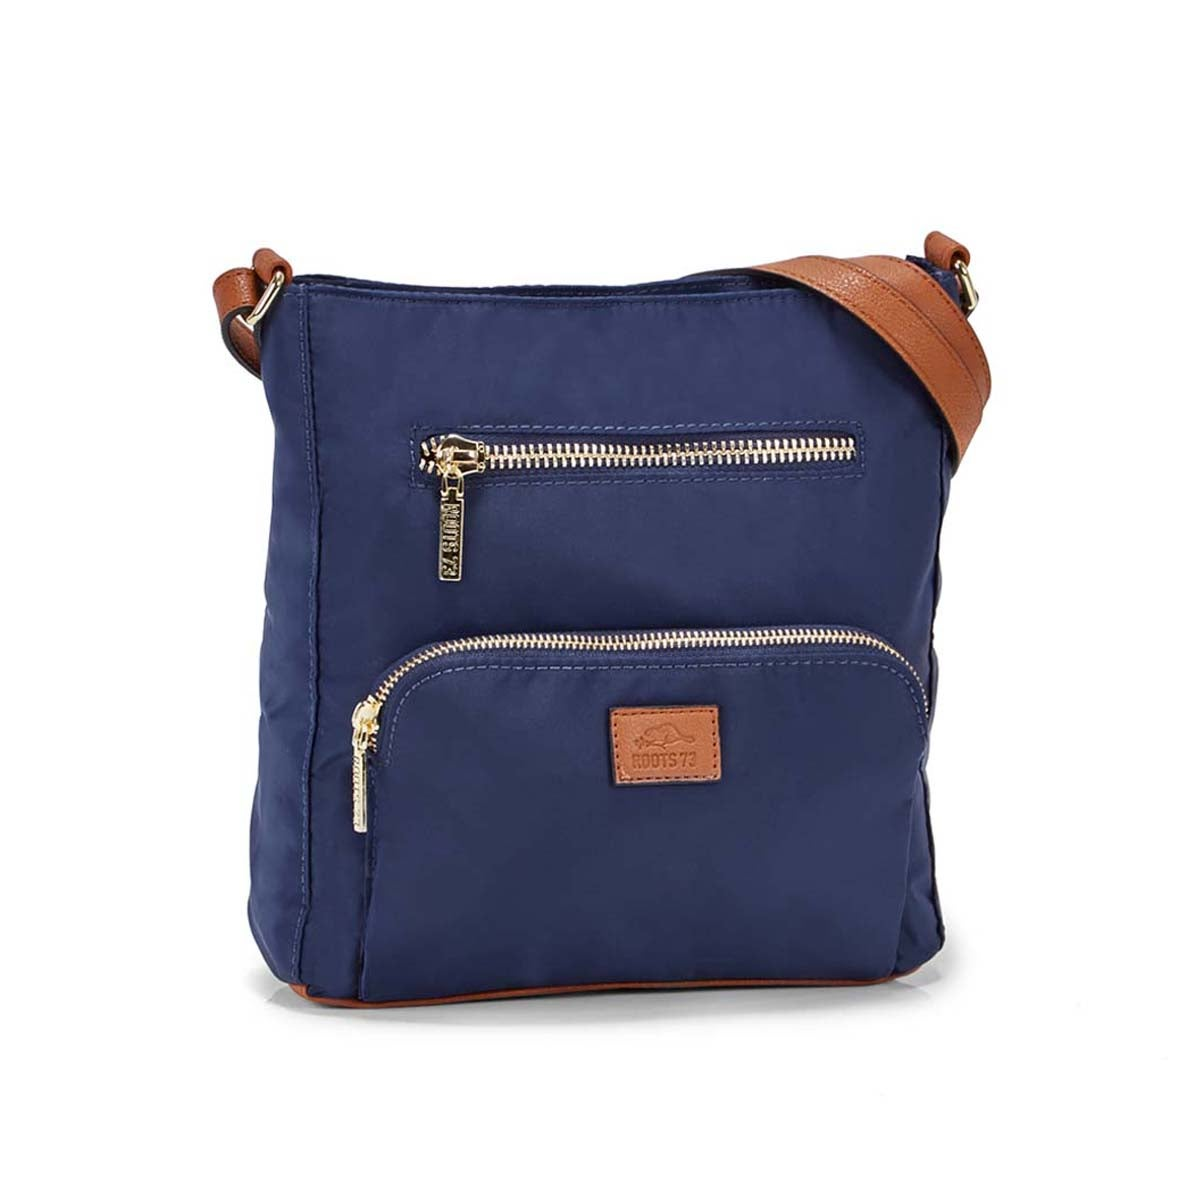 Women's R5327 navy crossbody bag